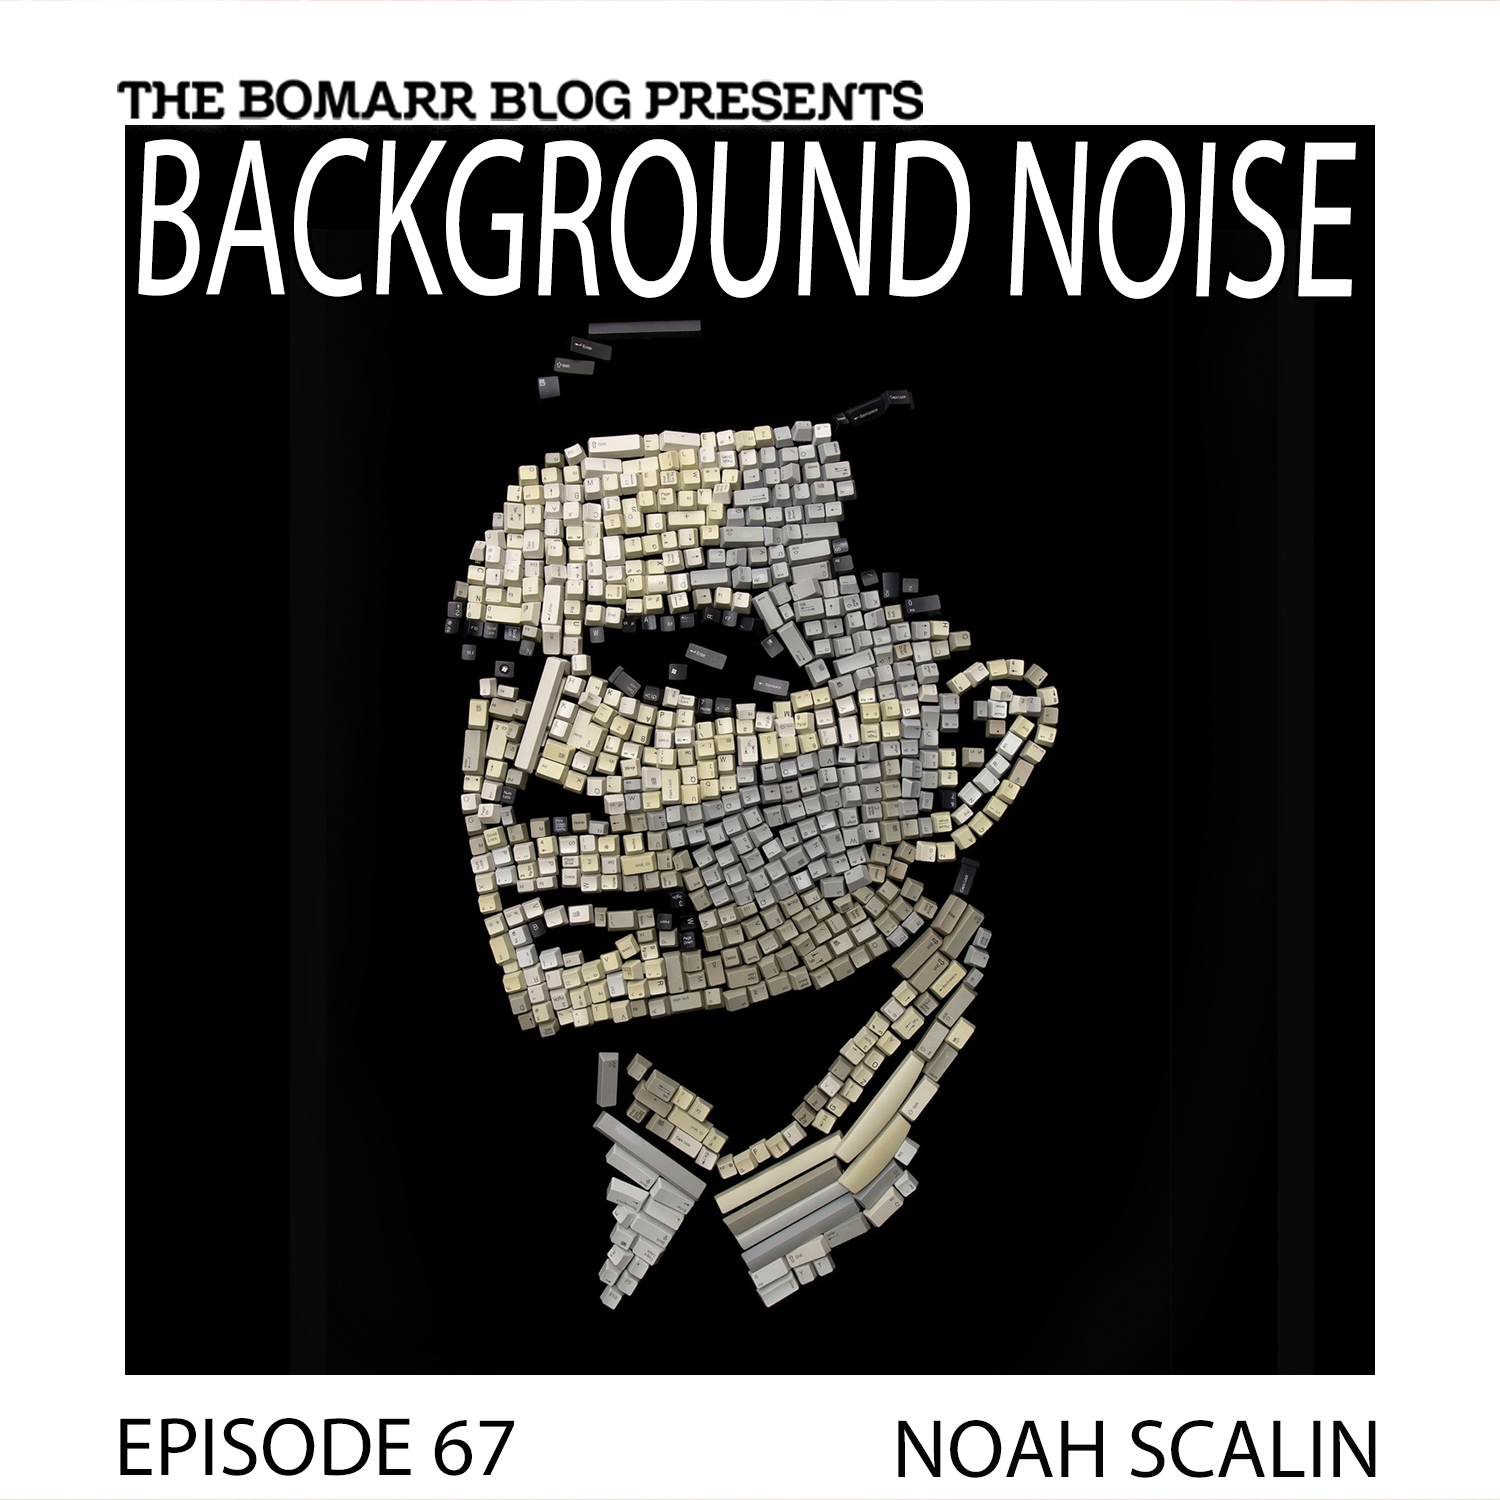 THE BACKGROUND NOISE PODCAST SERIES FOCUSES ON THE MUSIC THAT ARTISTS LISTEN TO WHEN THEY WORK, WHAT MUSIC INSPIRES THEM, OR JUST MUSIC THEY LIKE. THIS WEEK, IN EPISODE 67, THE FOCUS IS ON ARTIST NOAH SCALIN